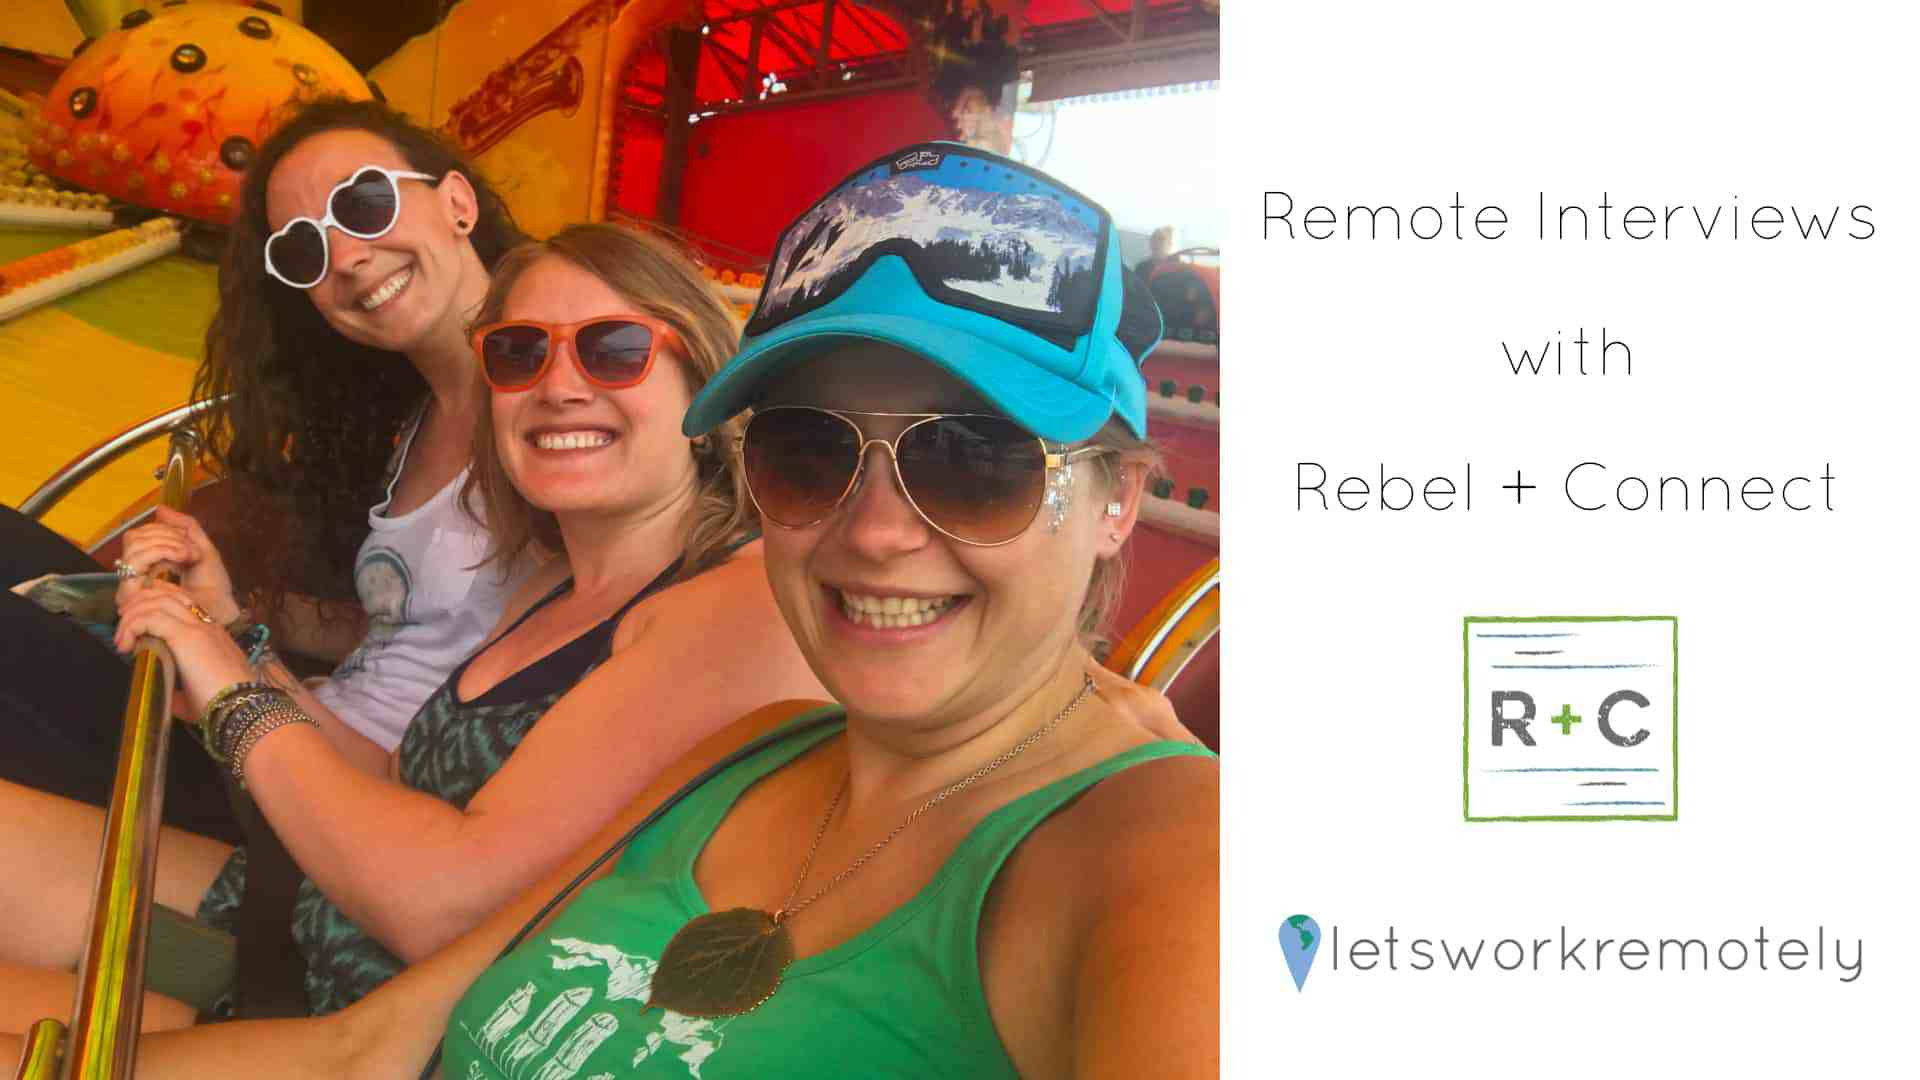 Lets Work Remotely features Rebel + Connect for their Remote Interviews series.